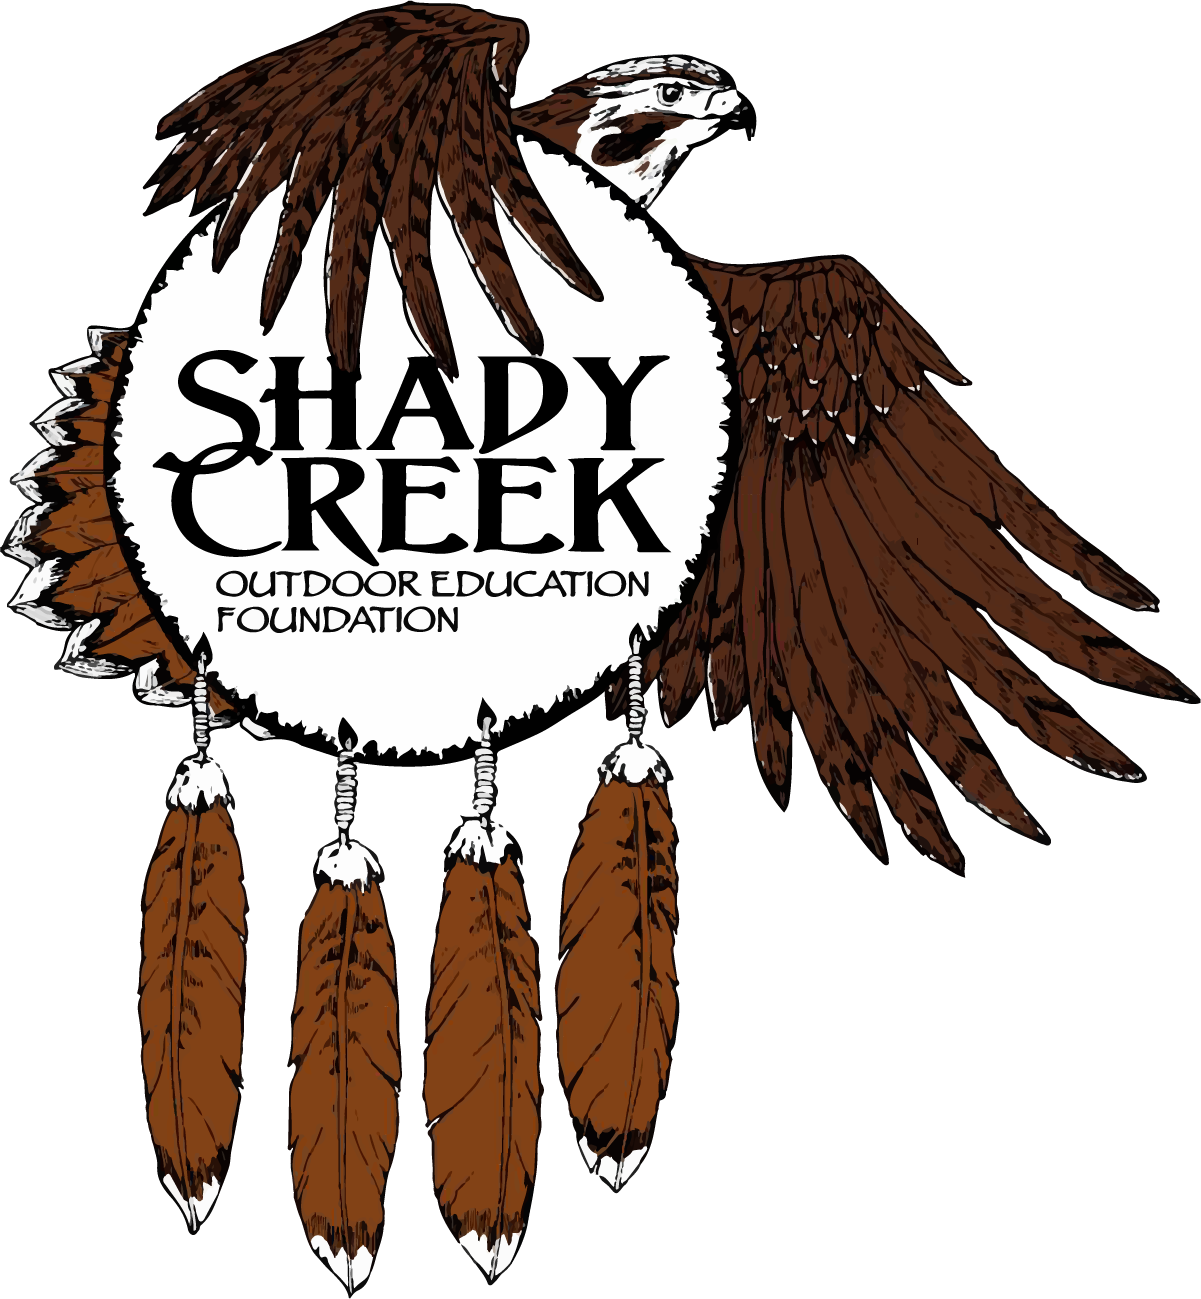 shadycreekoef.org.